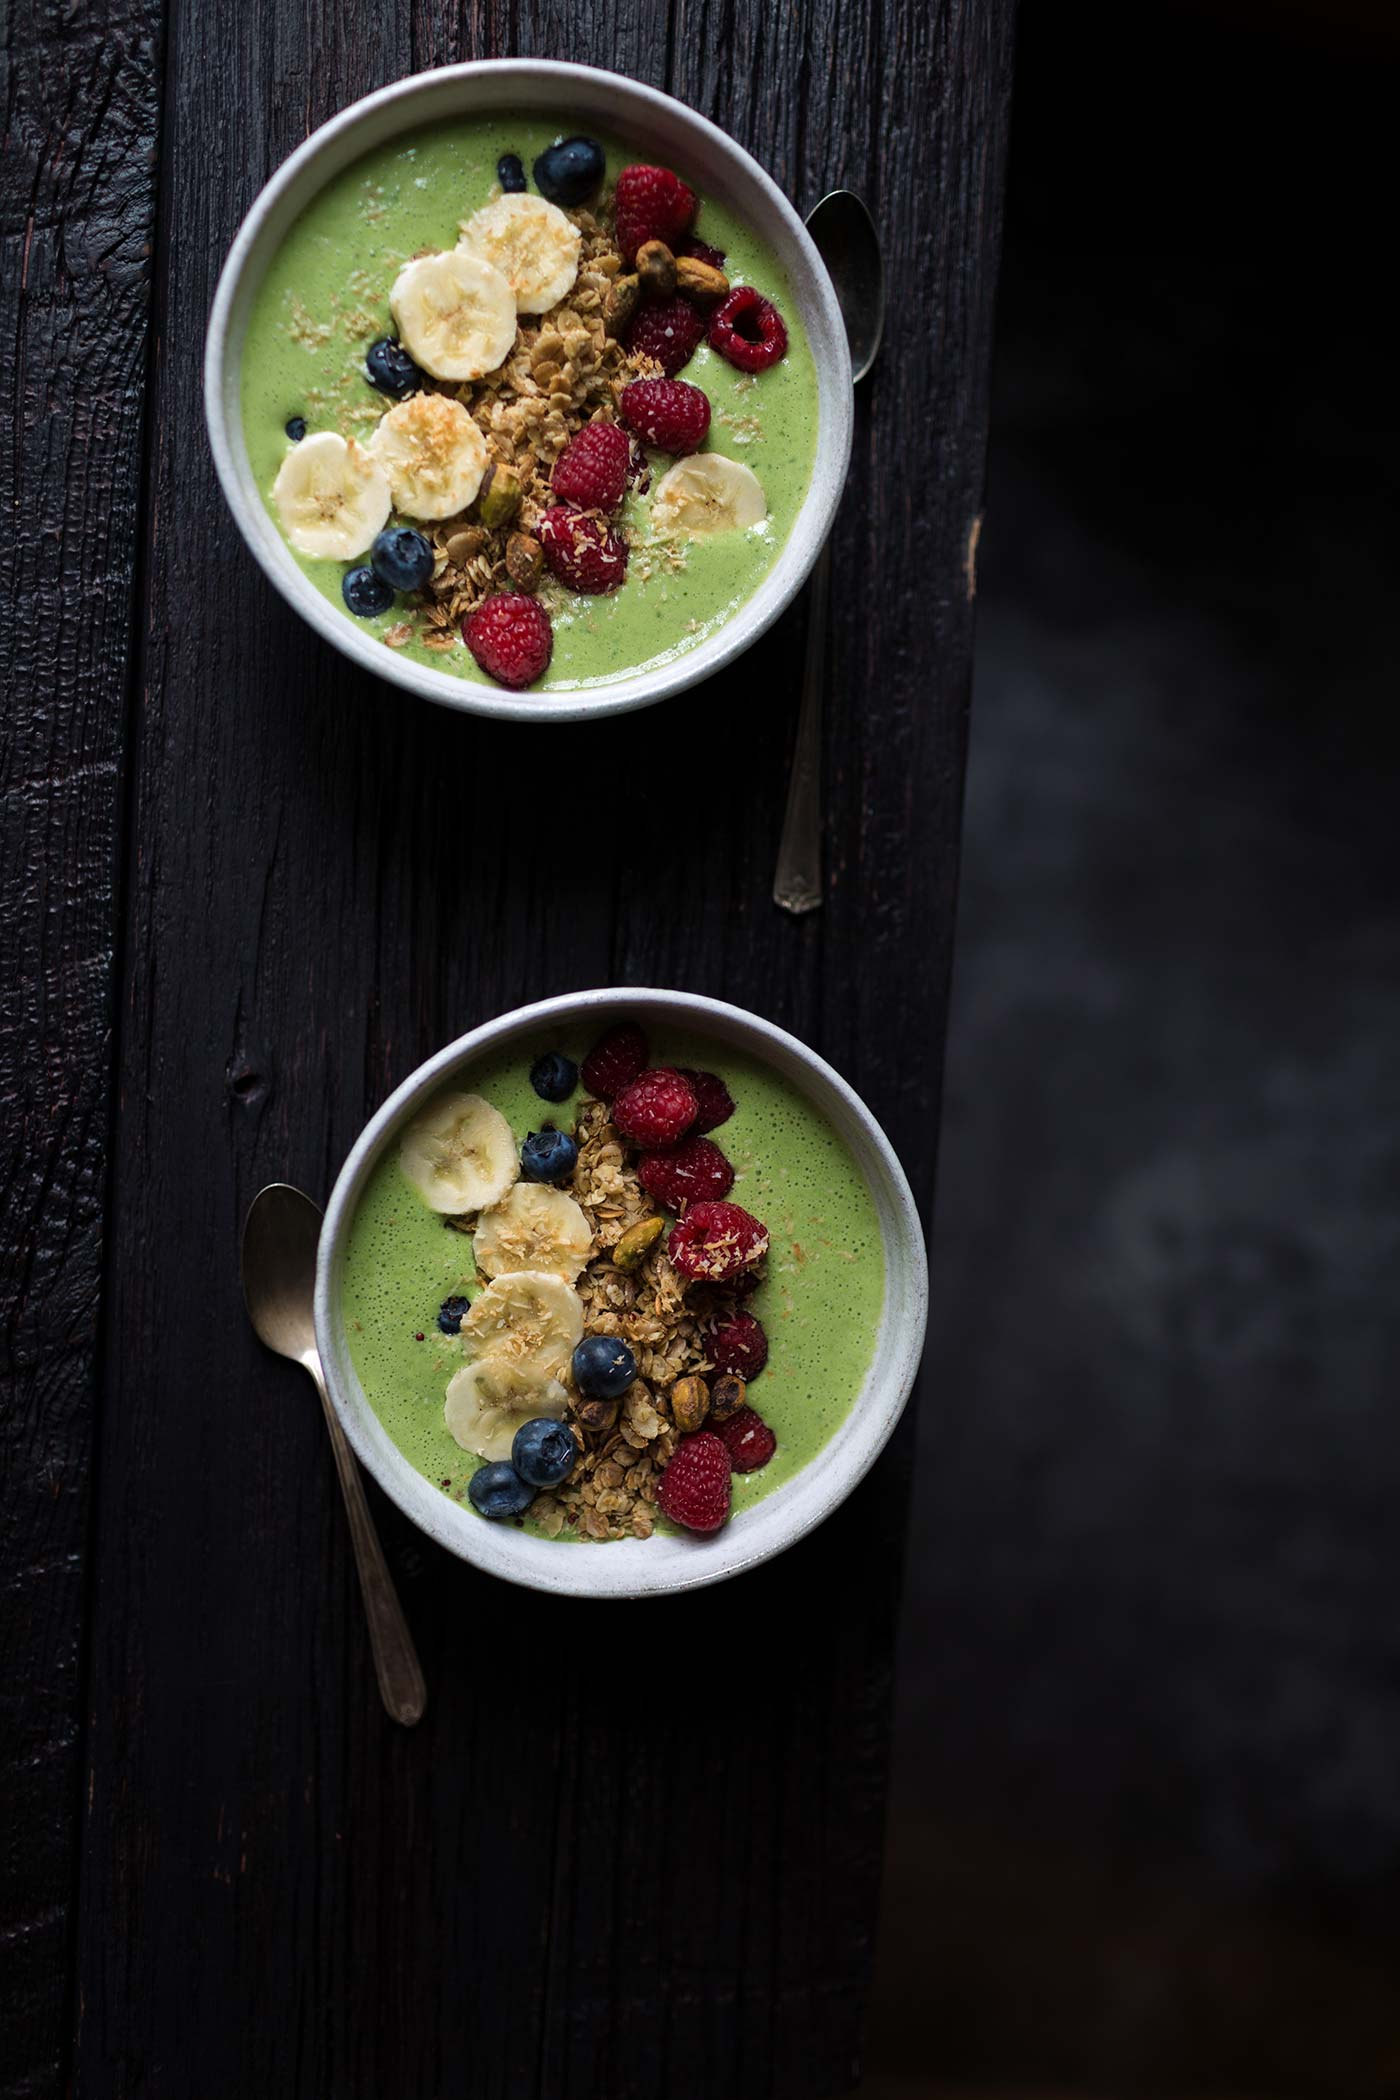 This Green Berry Granola Smoothie Bowl is a healthy, flavorful breakfast that also supports a great cause! Get the easy-to-follow recipe from Savory Simple.